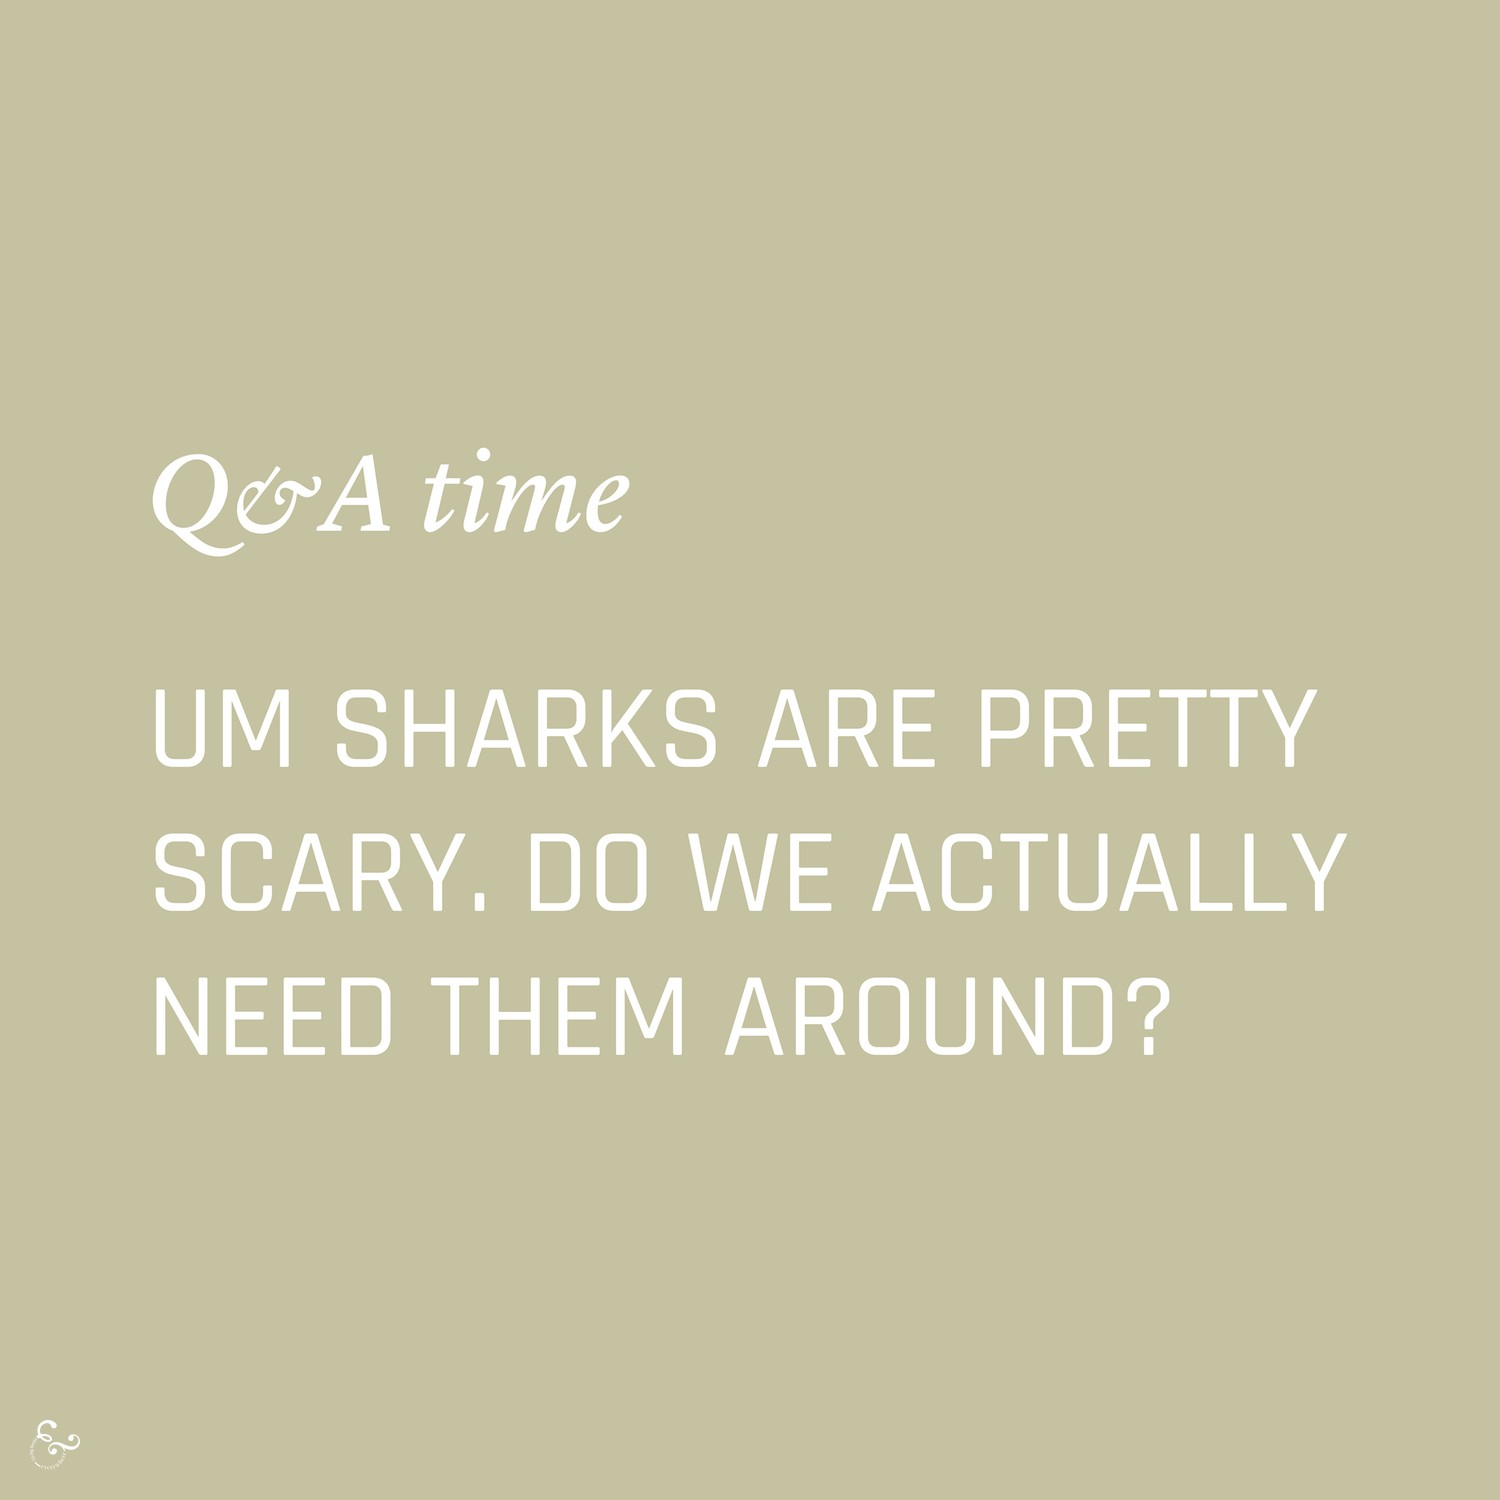 Do we really need sharks? Environment Environmental Questions FAQs Frequently Asked Questions Climate Change Plastics Oceans Animals Nowhere & Everywhere